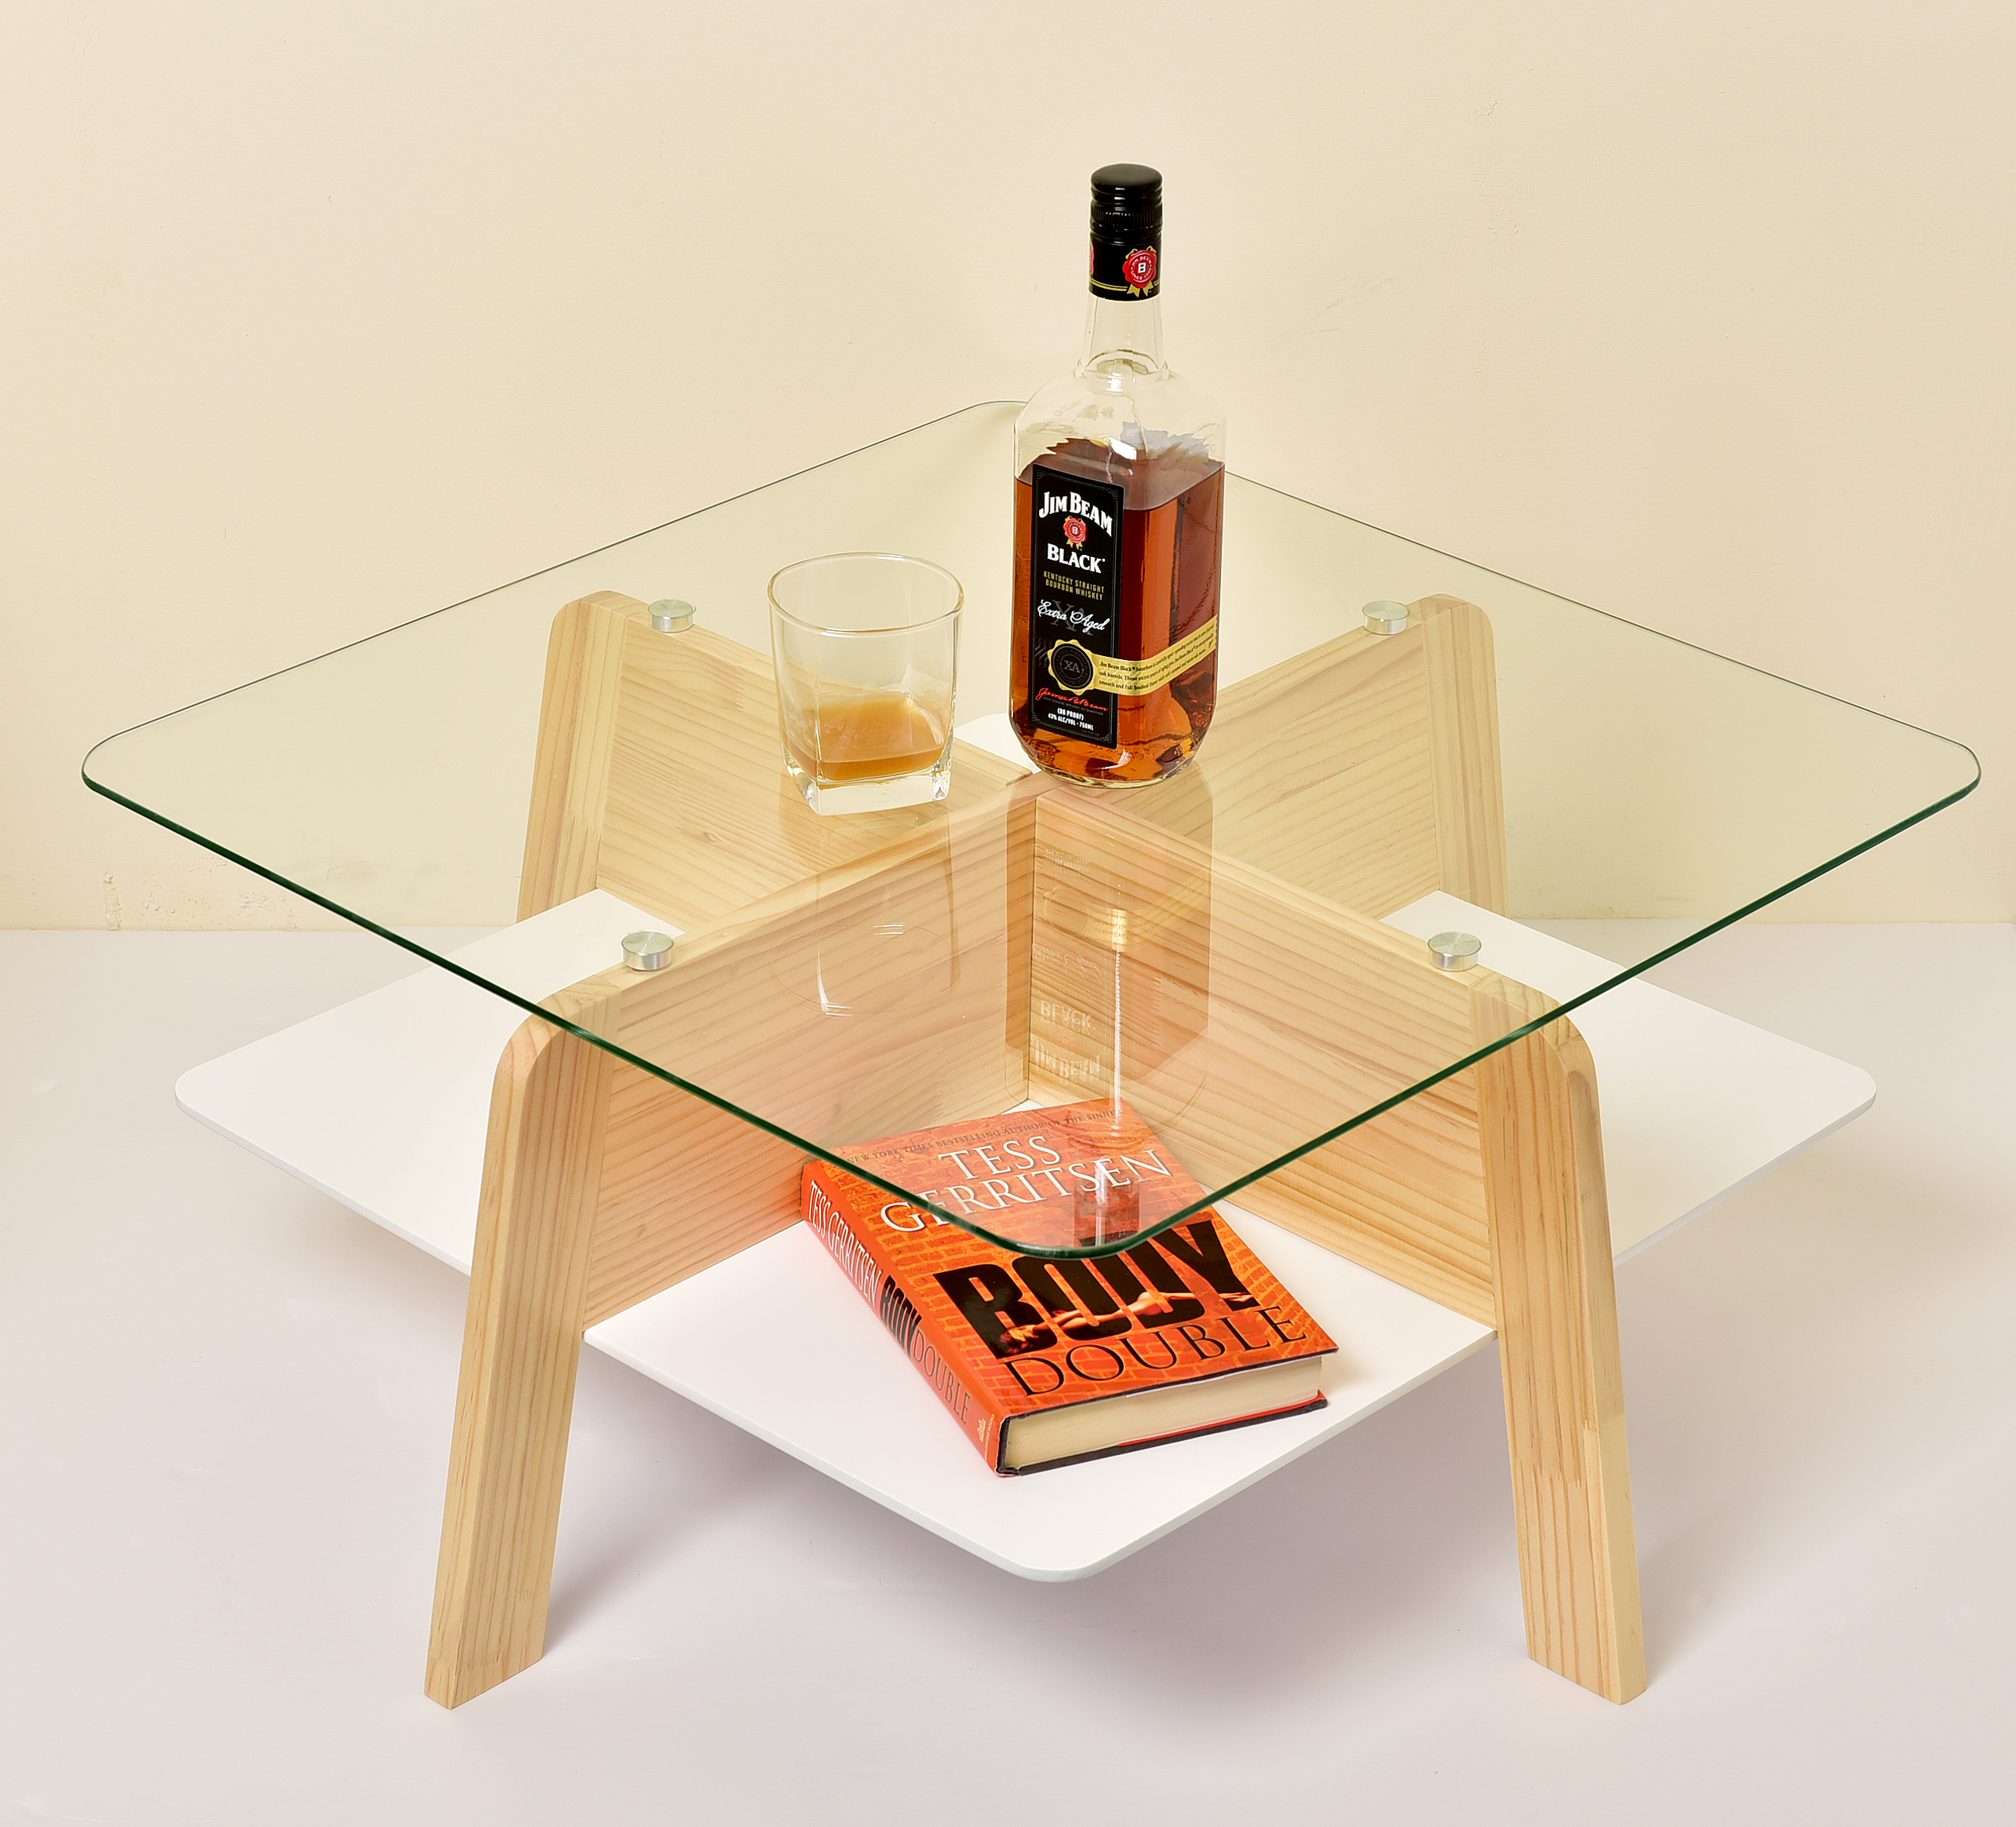 Round wooden tempered glass table with wood table leg